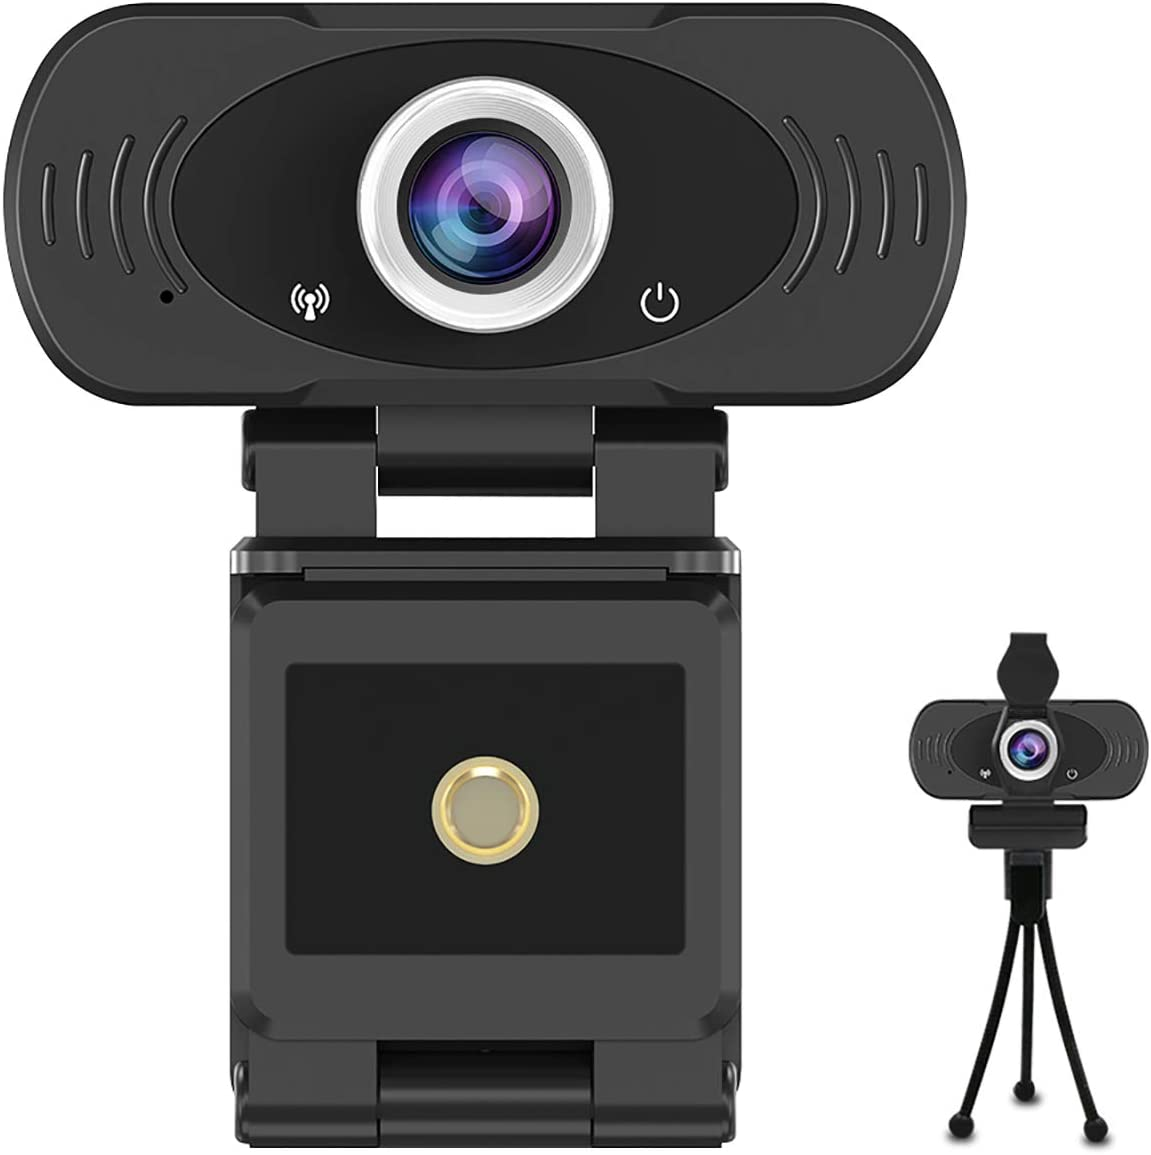 1080p USB Webcam with Built-in Microphone,Widescreen Live Streaming Video Calling for Zoom,Skype,with Tripod and Privacy Cover: Electronics